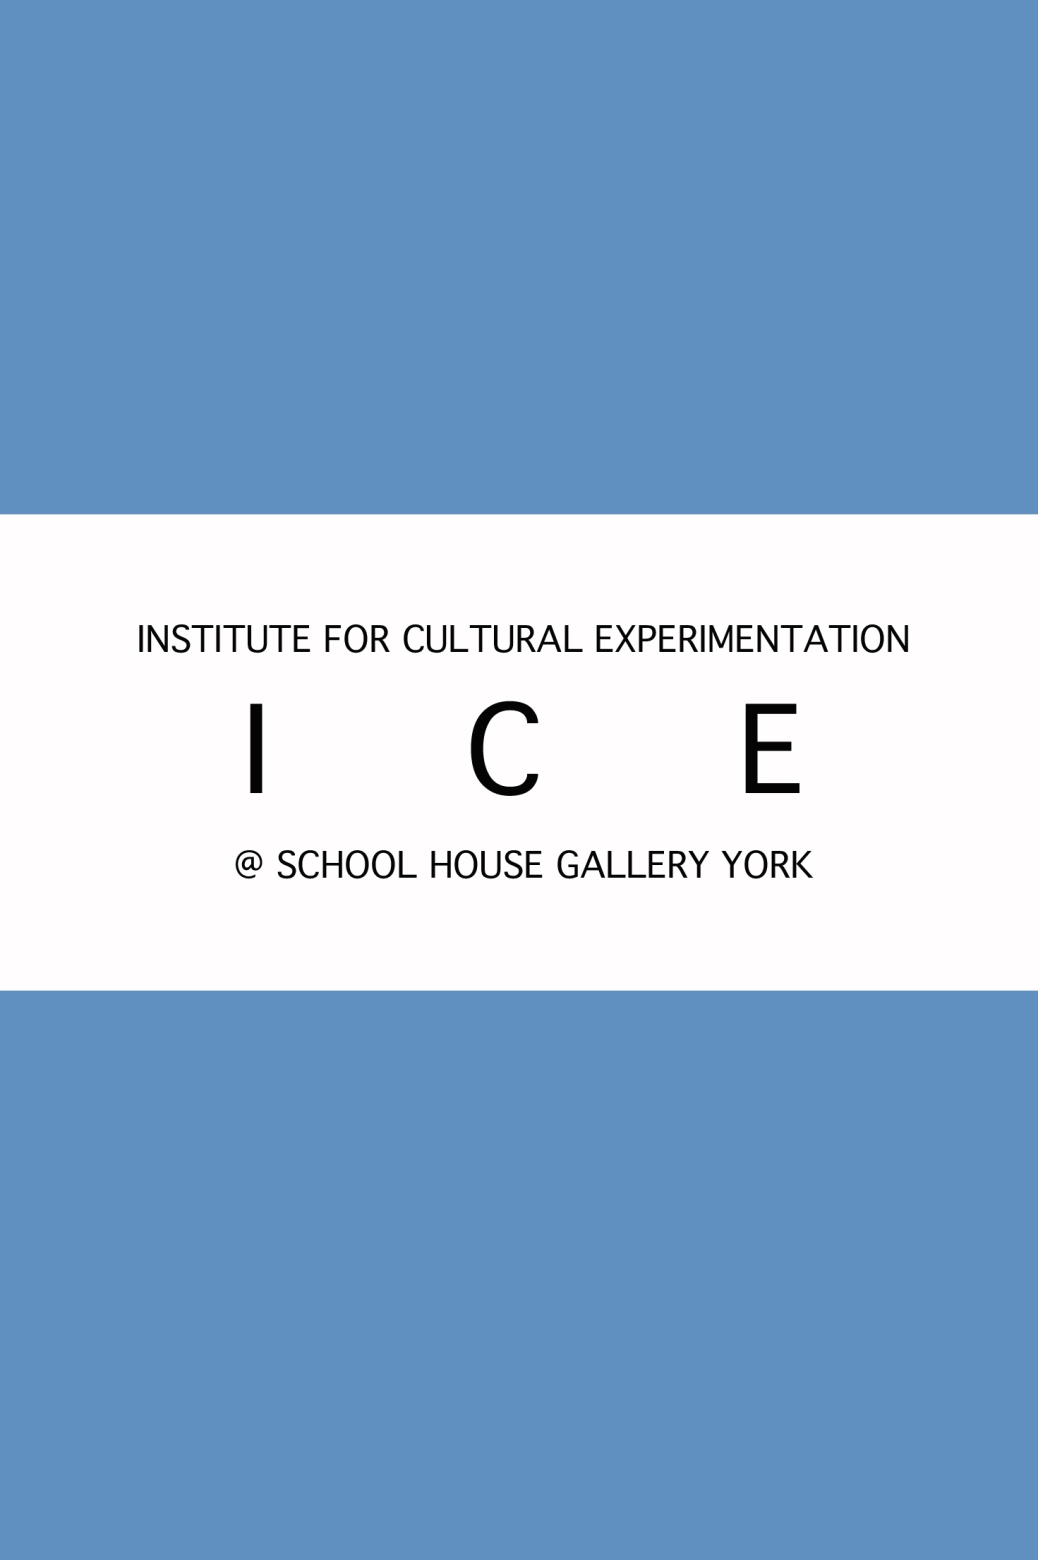 ice logo blue